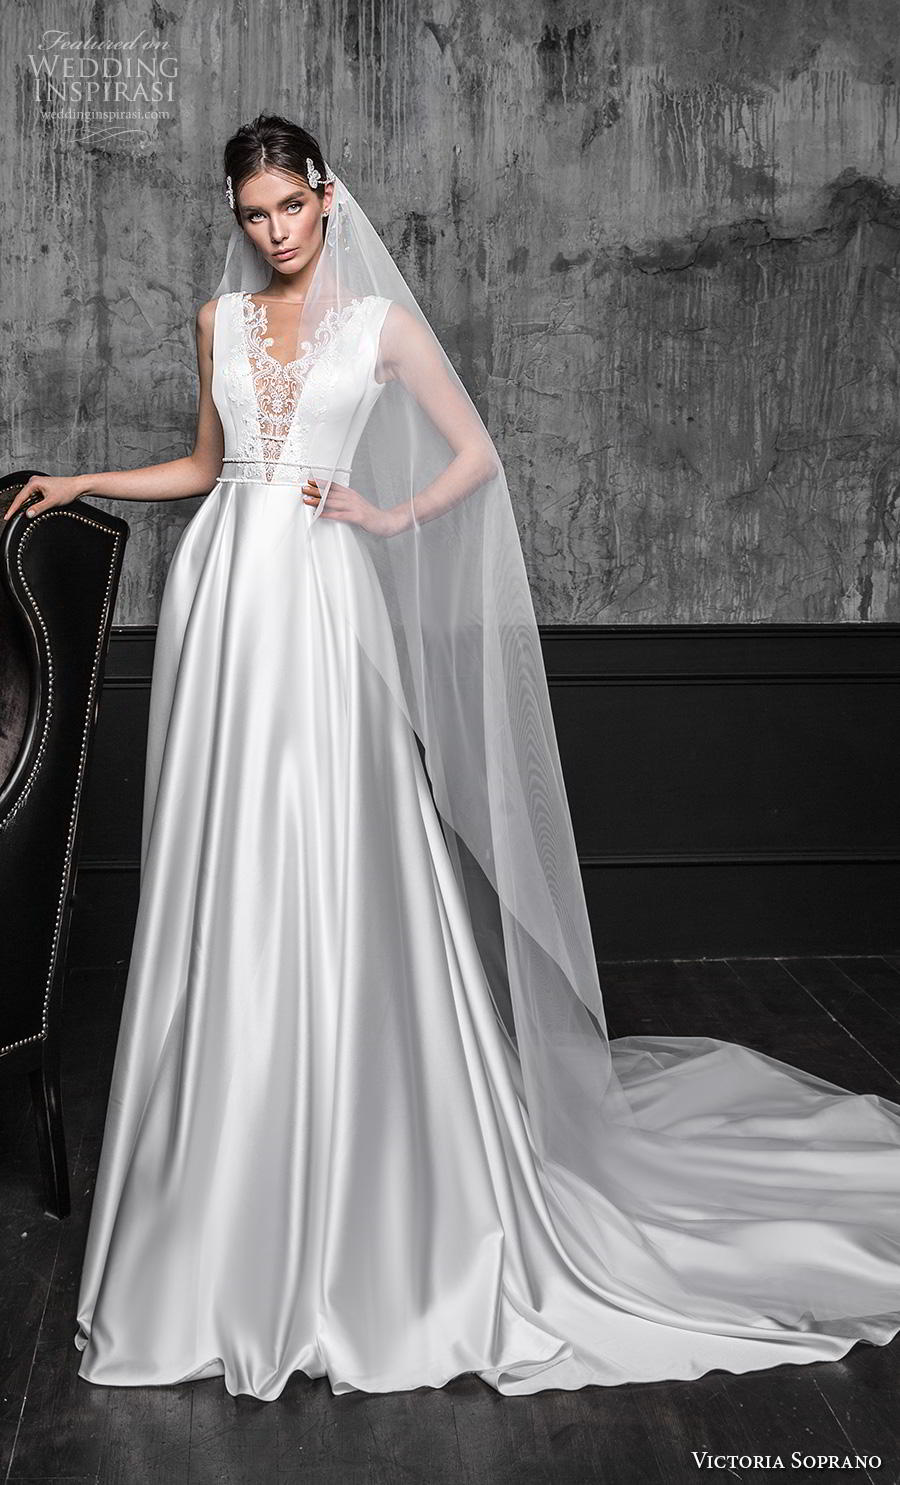 victoria soprano 2020 bridal sleevess illusion bateau v neck heavily embellished bodice satin a line elegant wedding dress illusion v back chapel train (17) mv